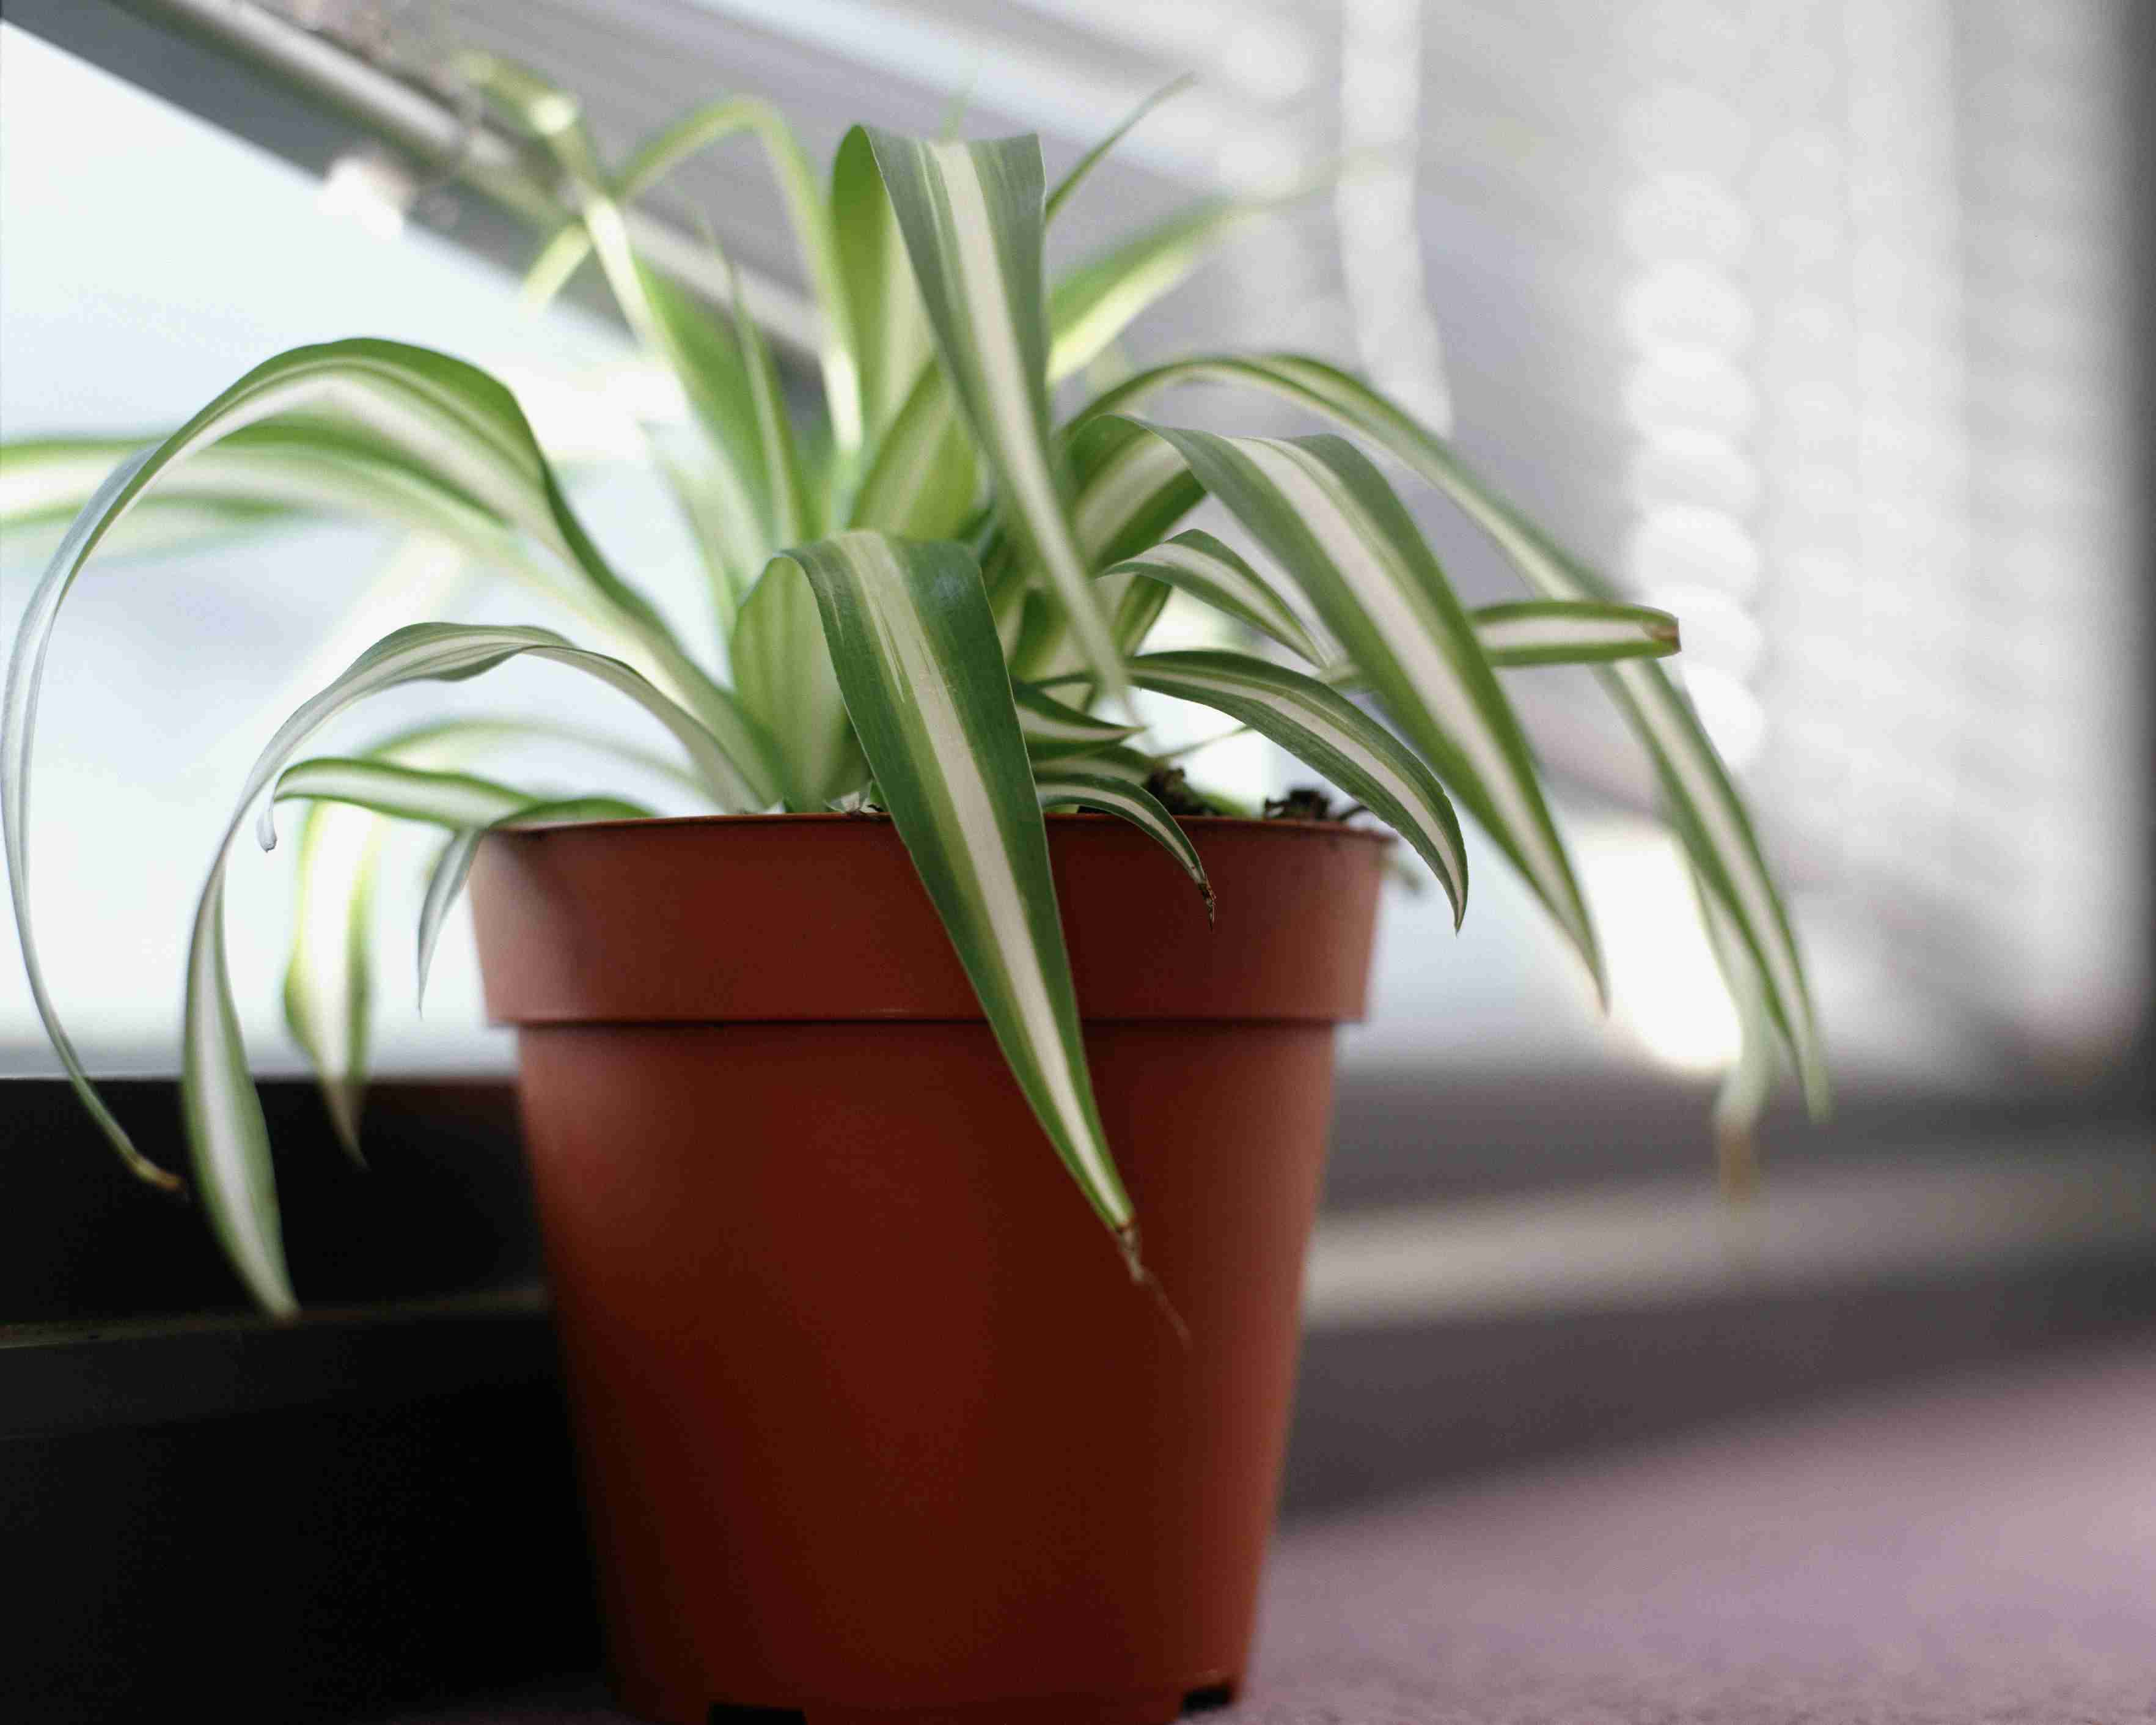 spider plant on windowsill 5b517b73c9e77c e1874